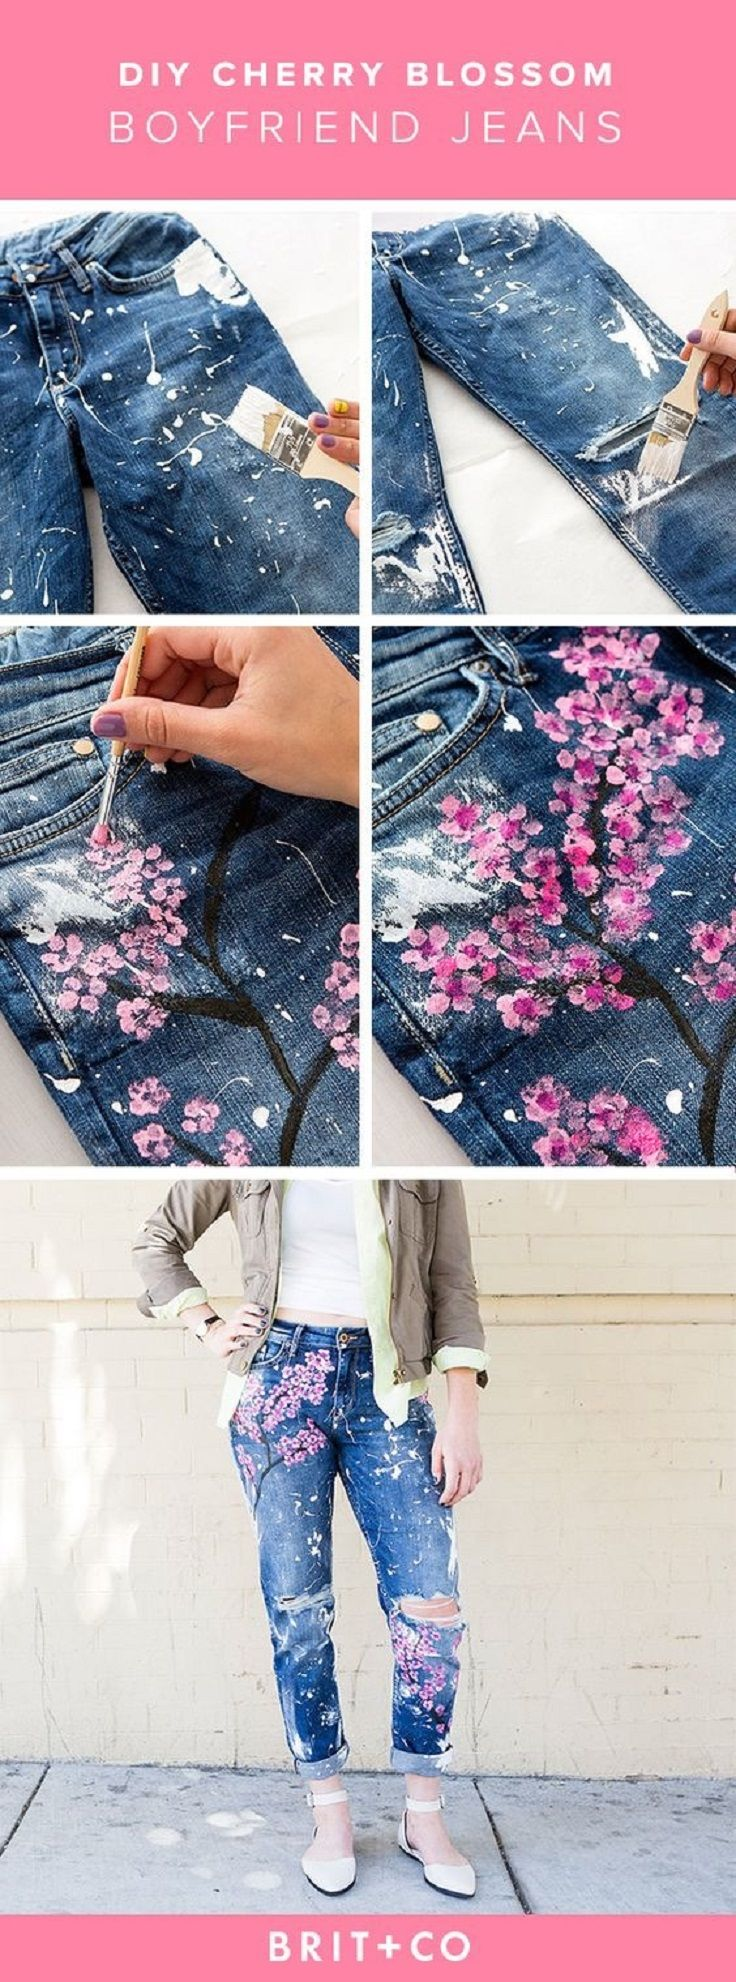 DIY Blake Lively's $500 Cherry Blossom Boyfriend Jeans - 13 Super Cool DIY Clothes Refashion Ideas You Must Try